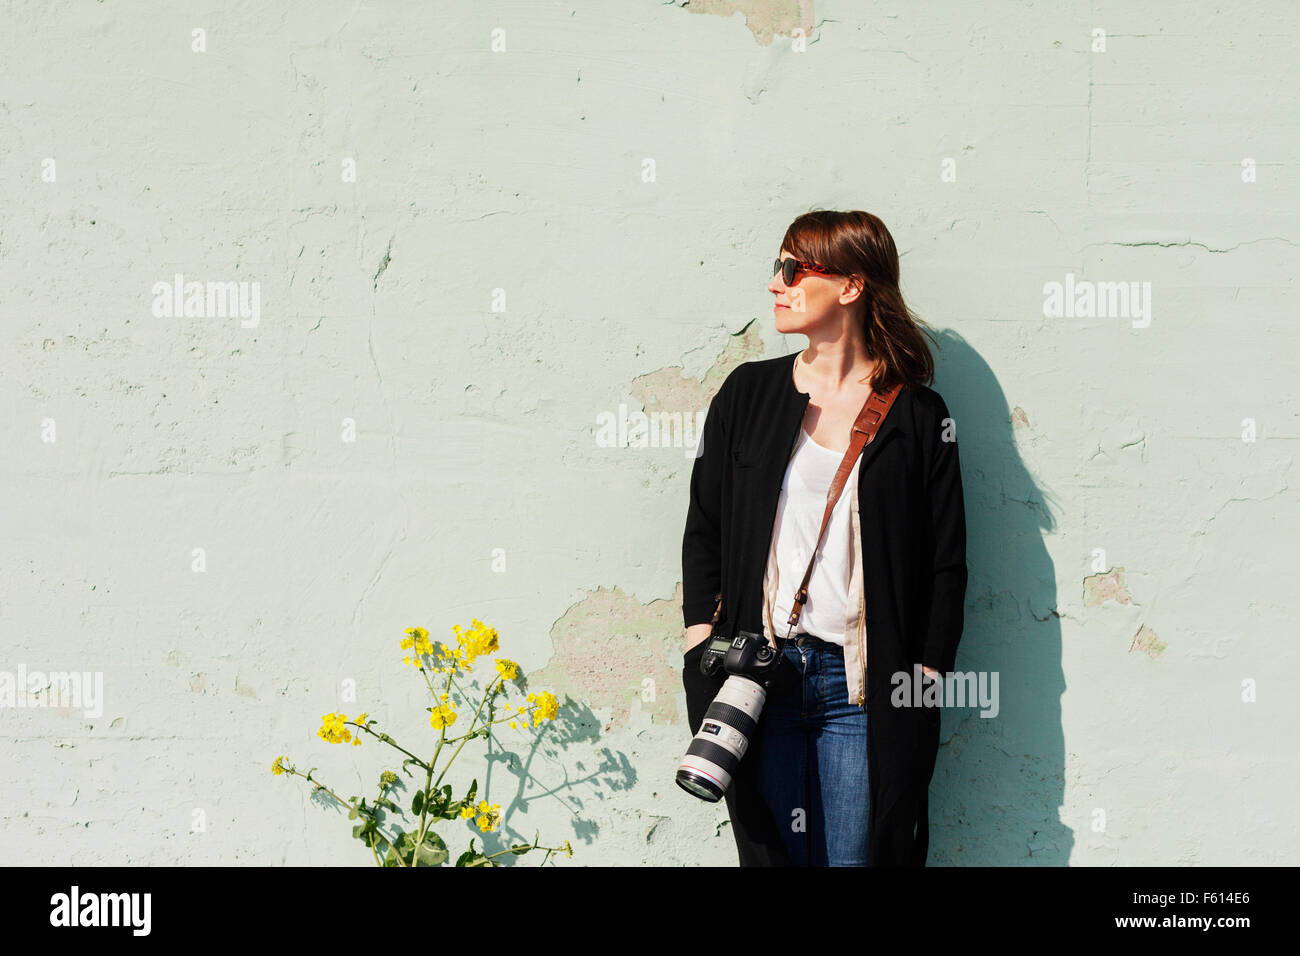 Young woman with SLR camera - Stock Image